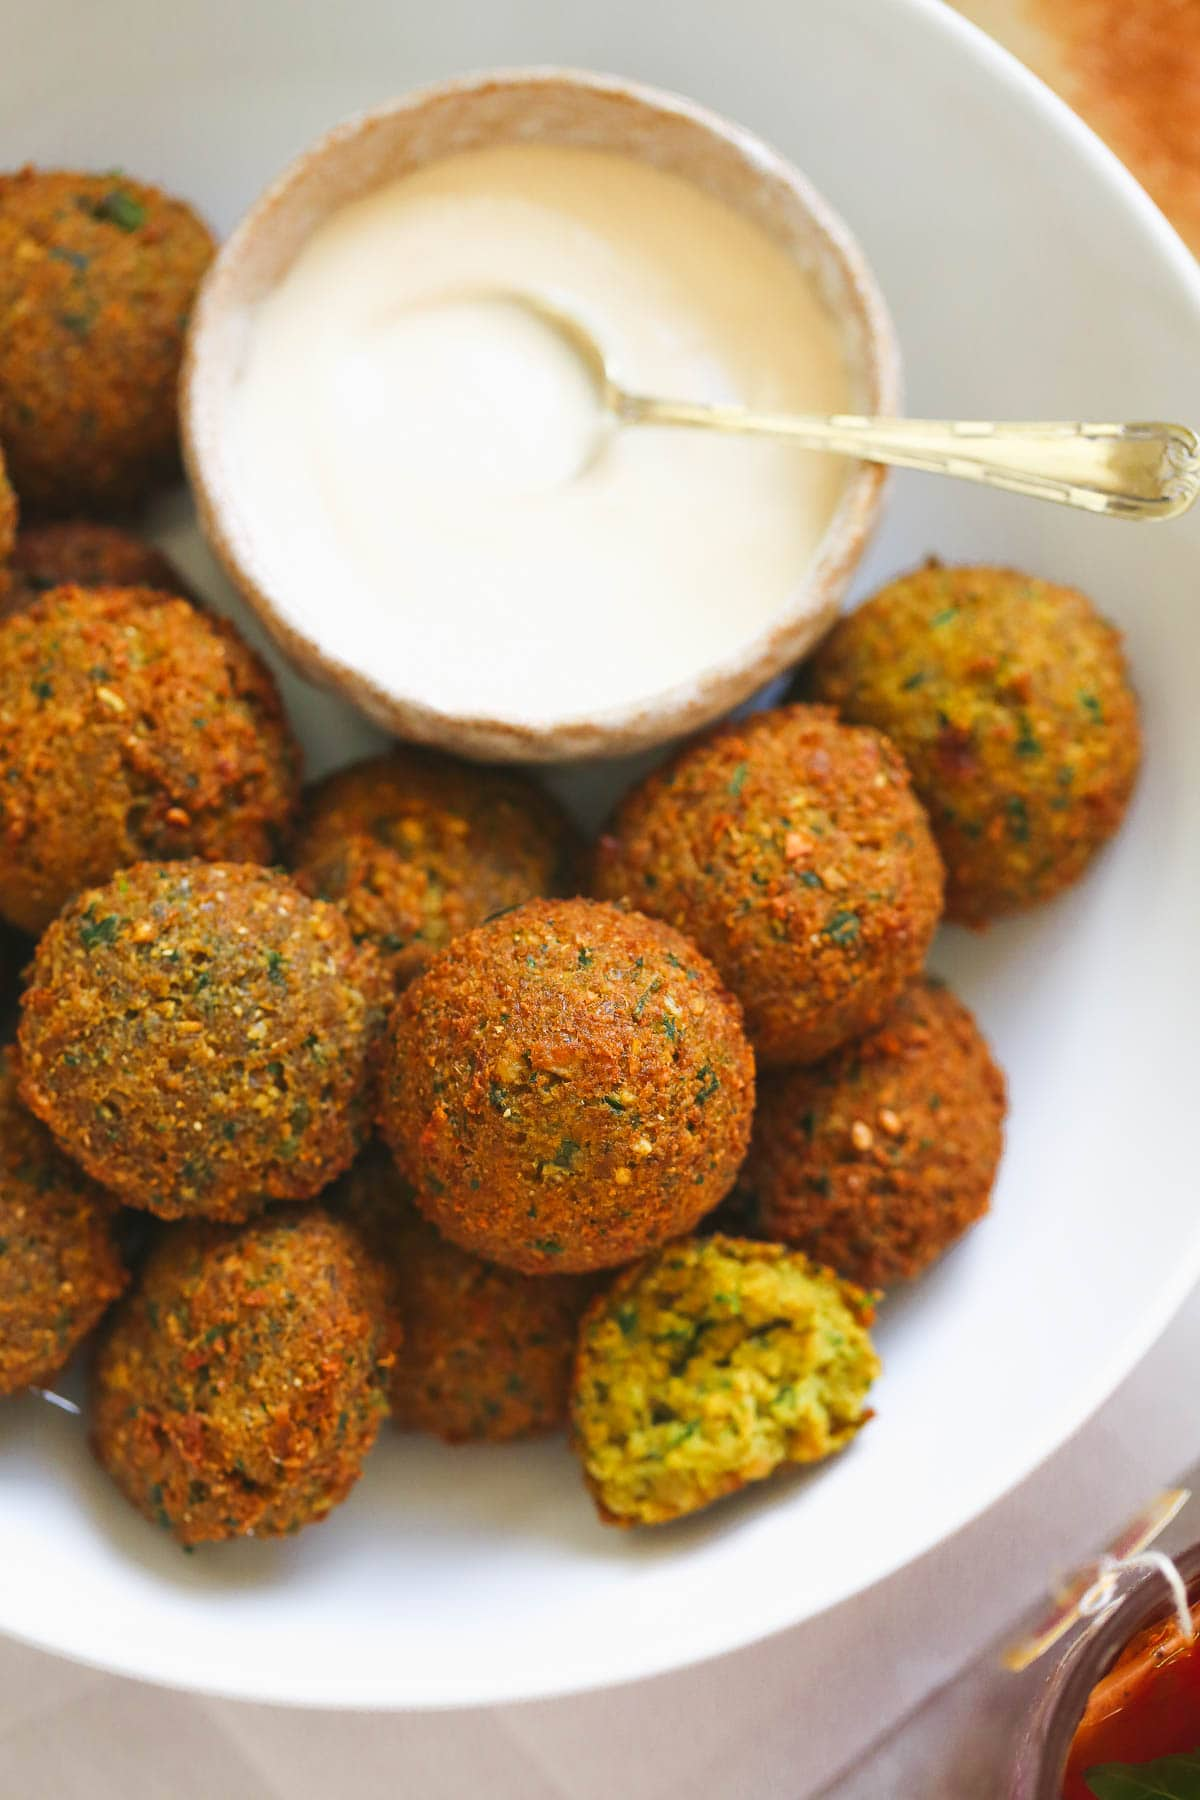 A close up to show texture of the falafel balls